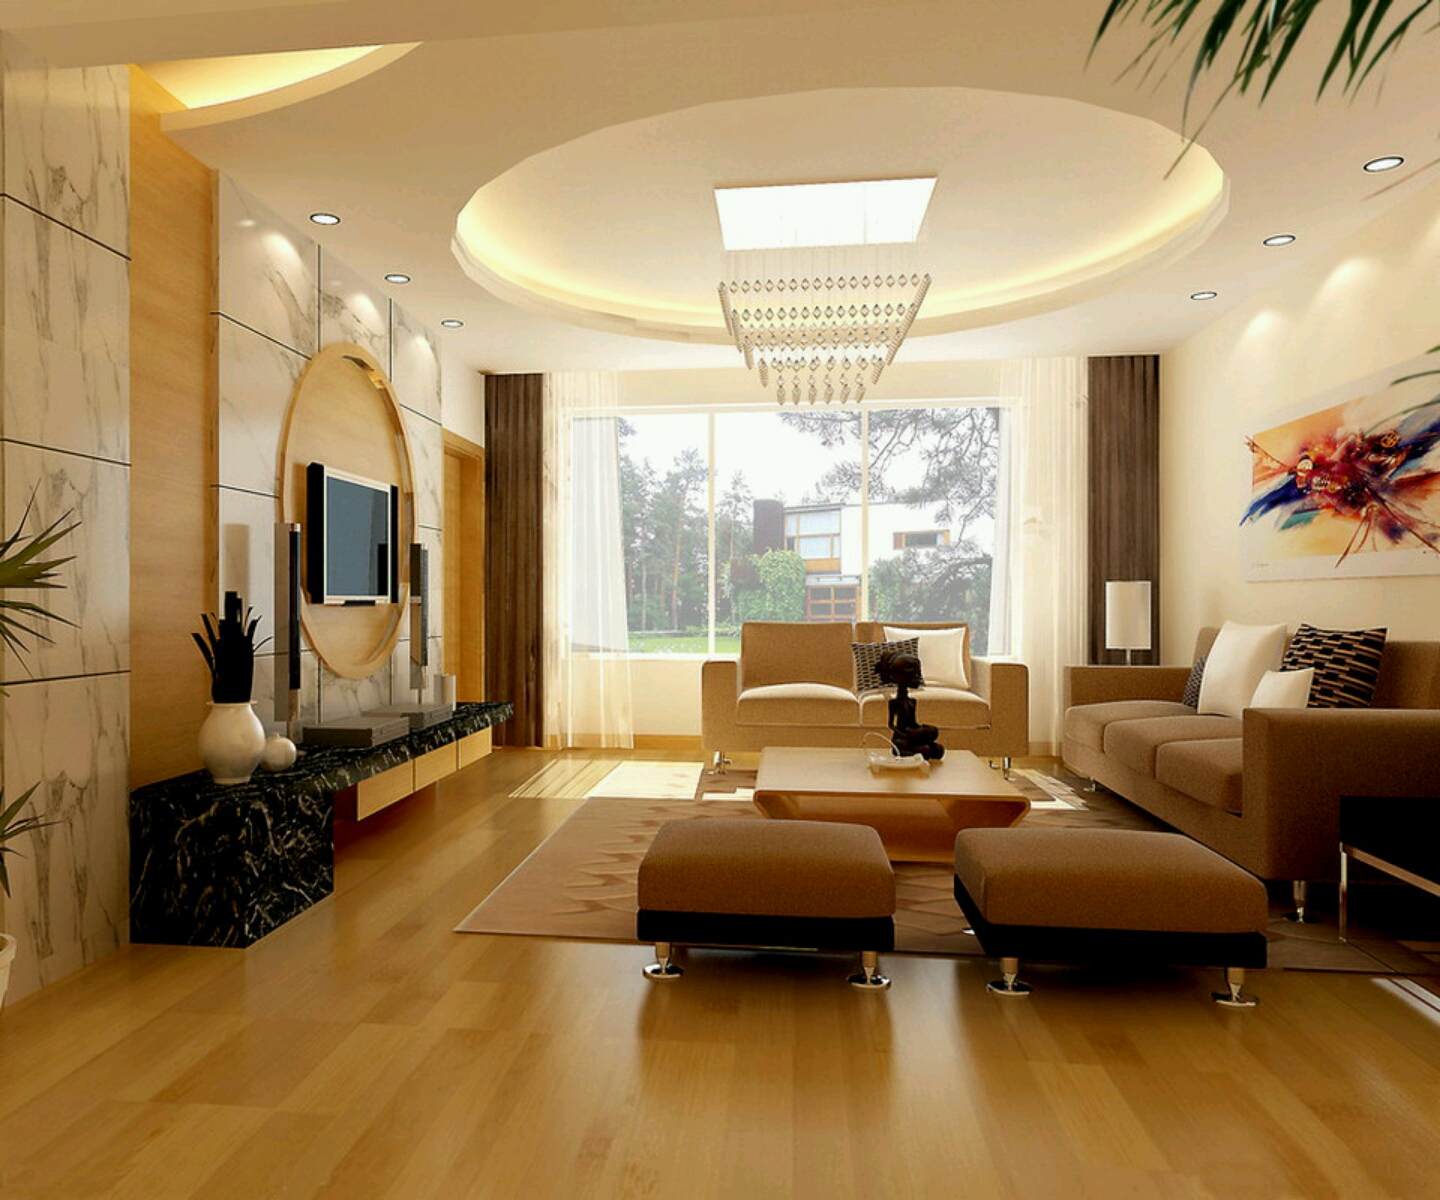 Modern interior decoration living rooms ceiling designs ideas new home designs - Home interiors living room ...